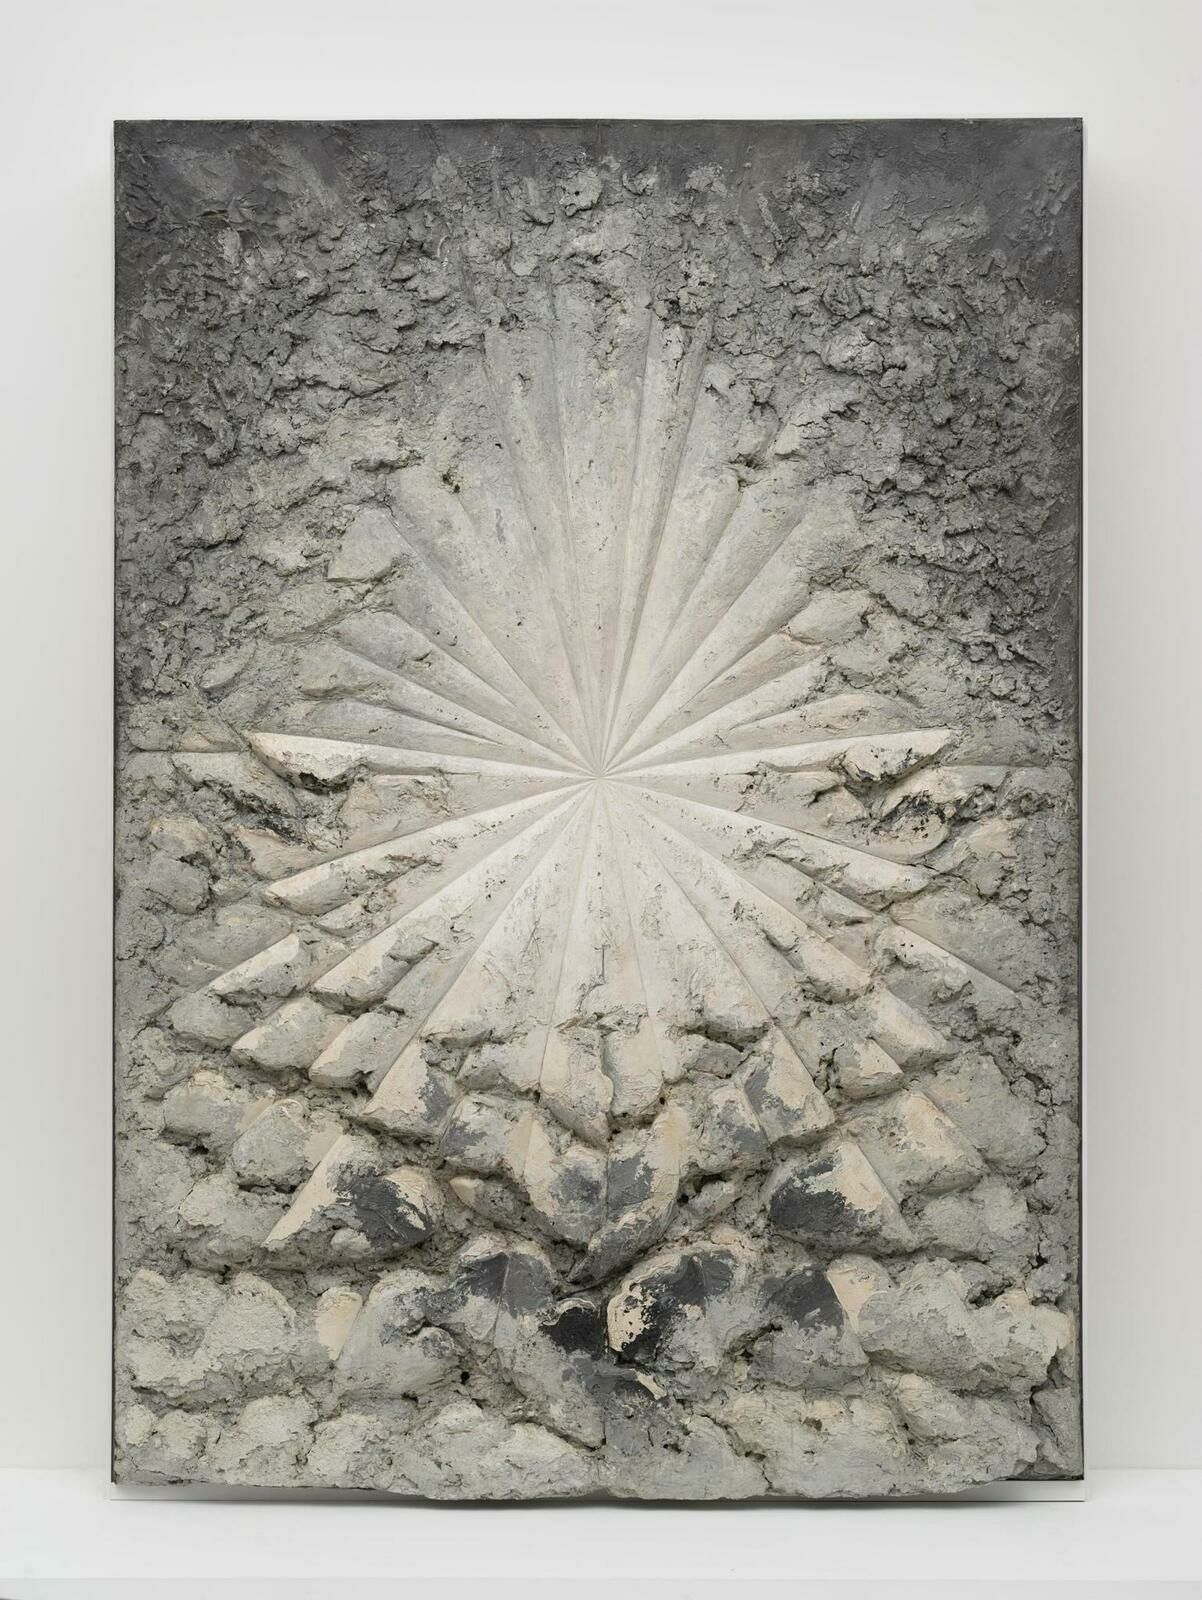 A still of Jay DeFeo's The Rose, comprised of oil, wood, and mica on canvas.